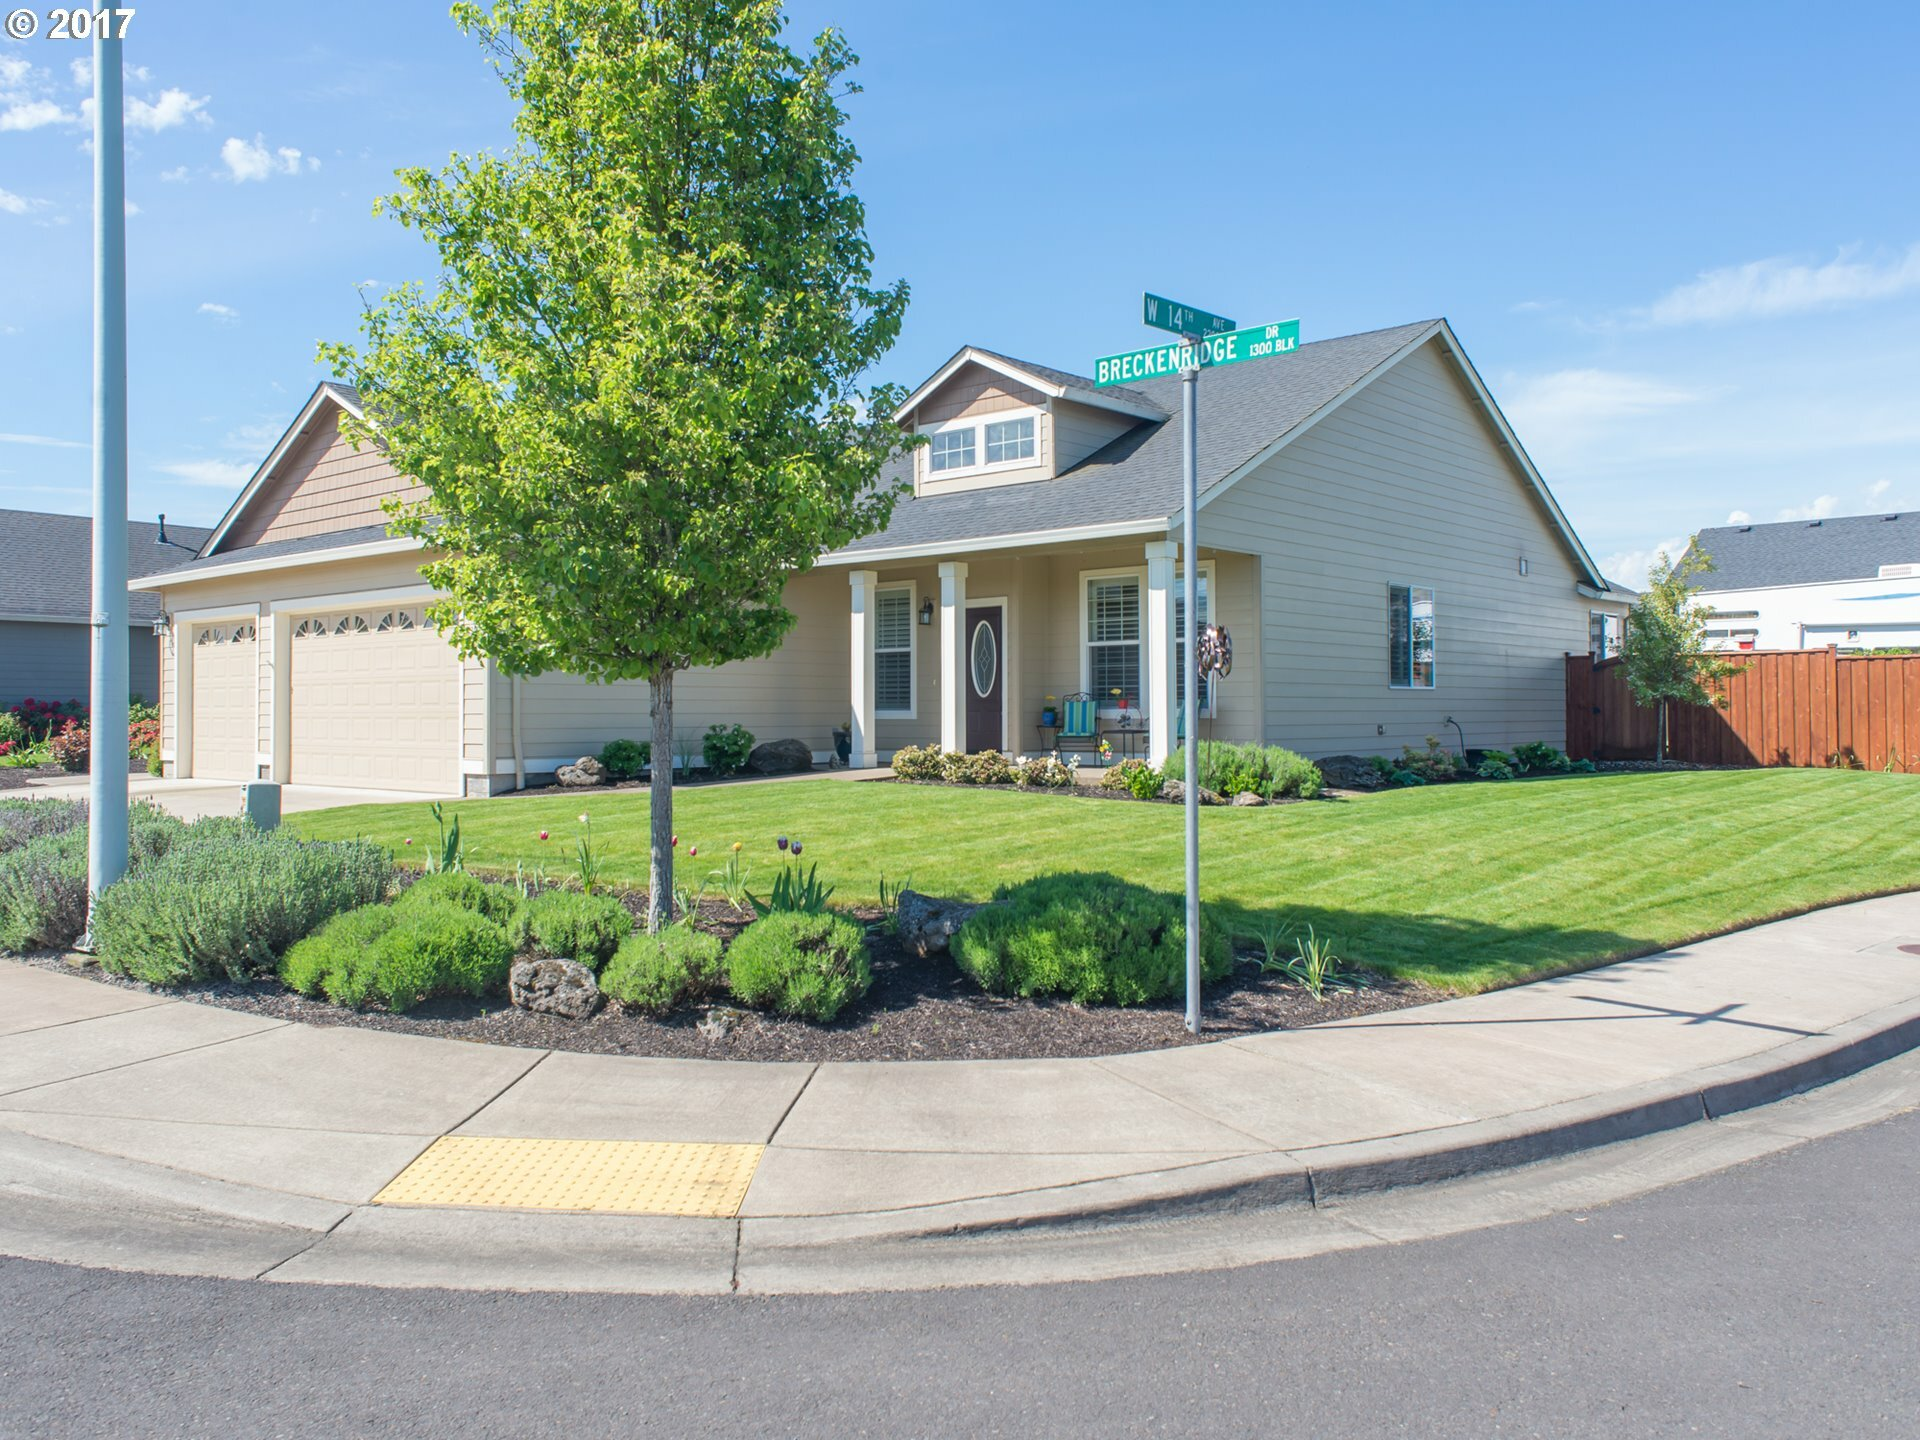 1391 Breckenridge Dr, Junction City, OR - USA (photo 1)